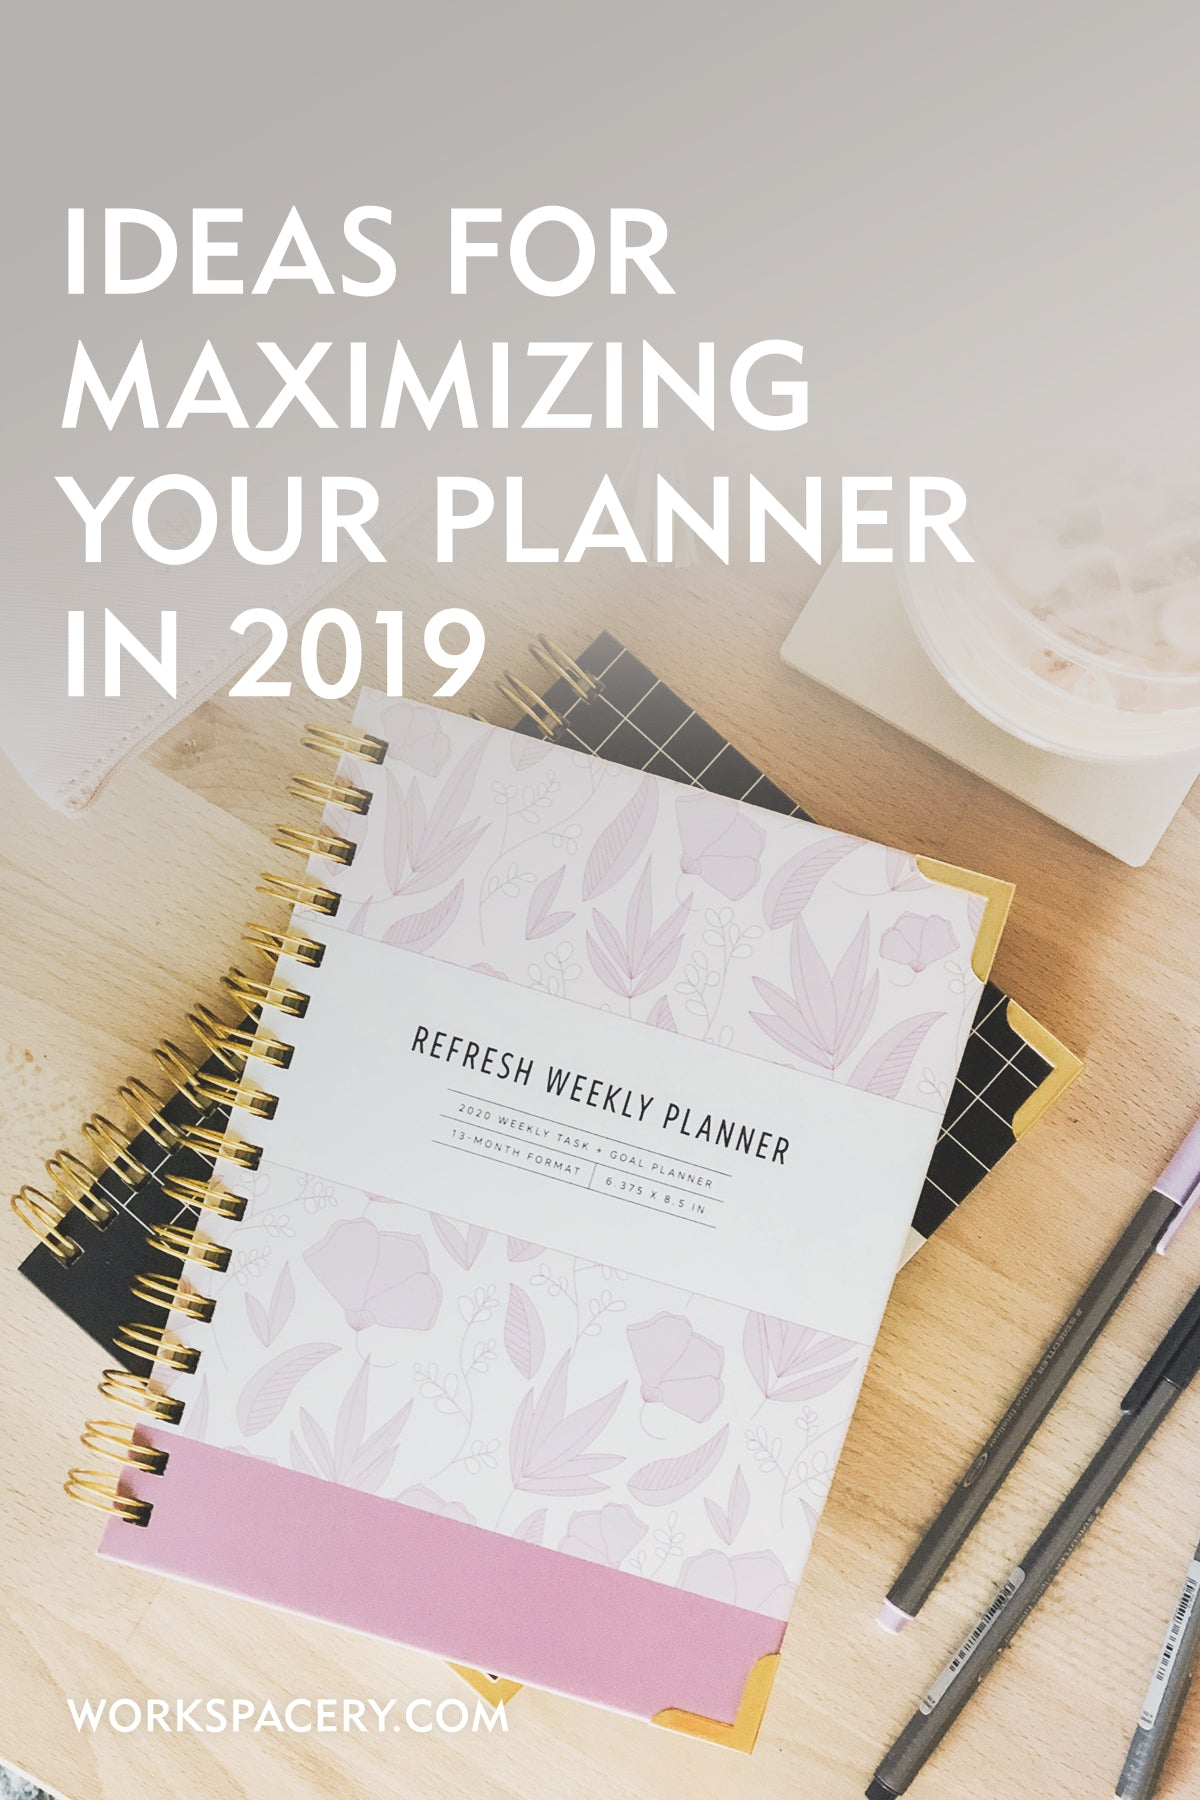 Ideas for Maximizing Your Planner in 2019